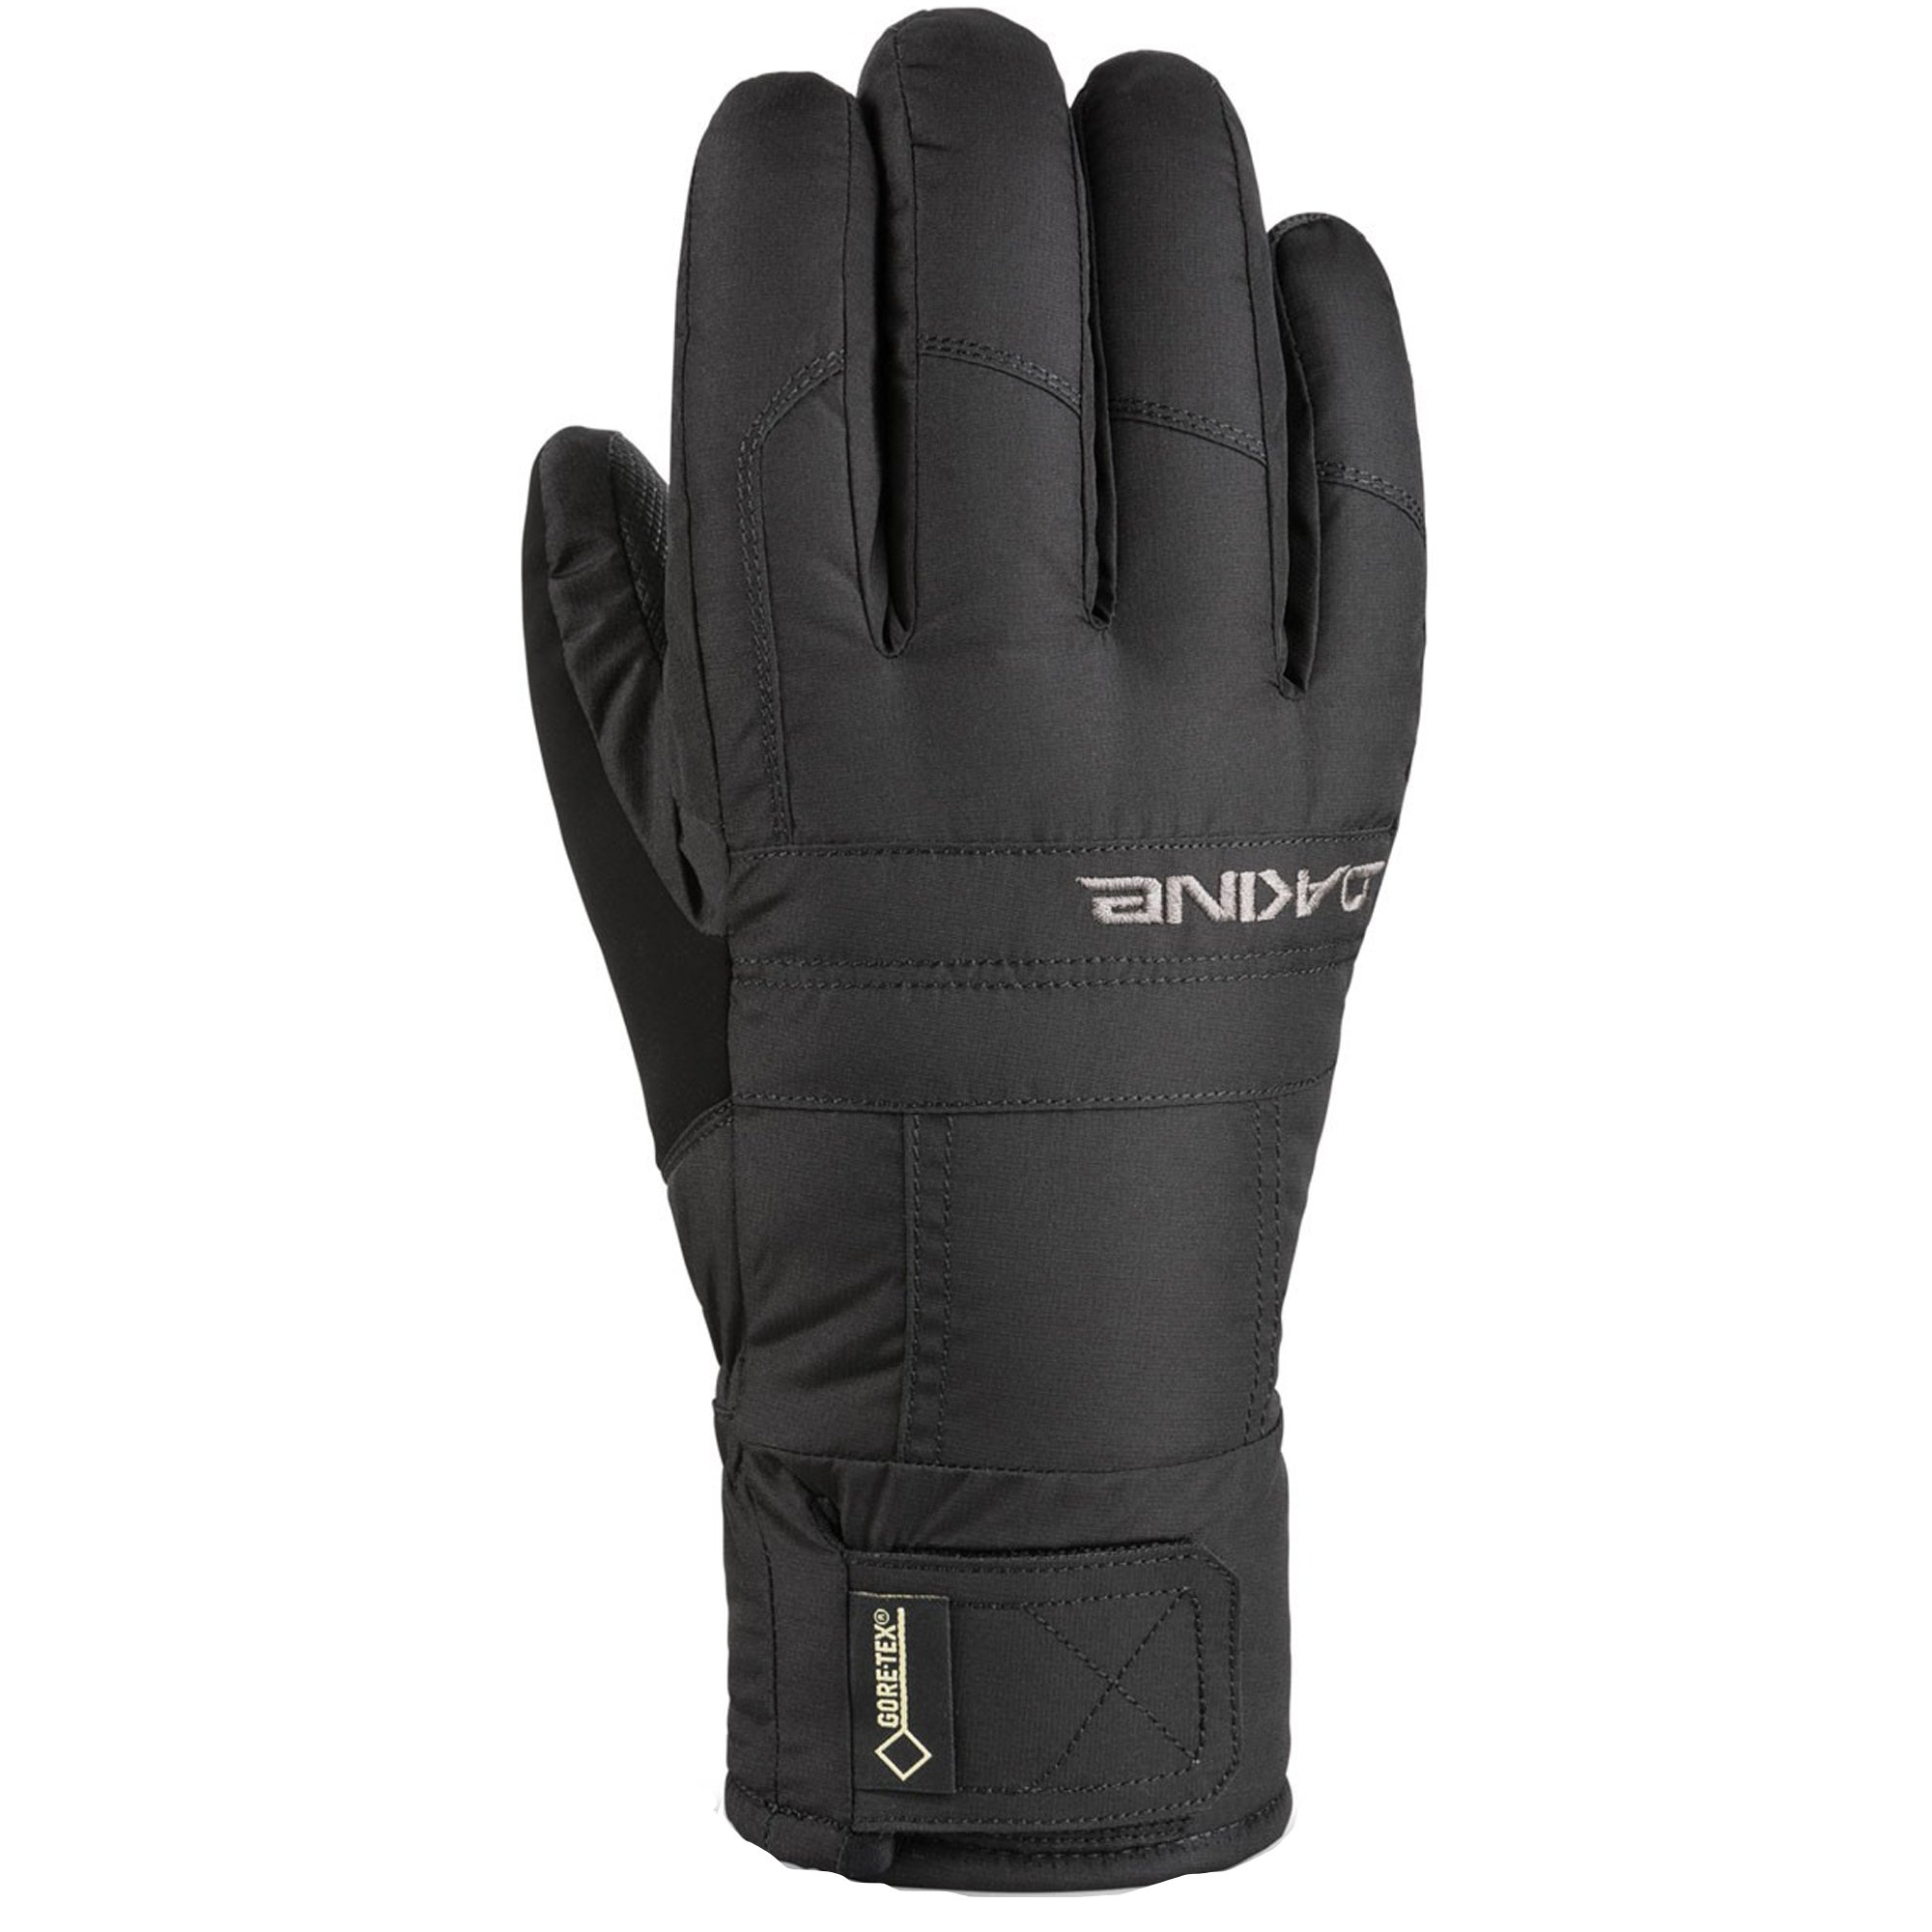 Dakine Men's Bronco Gloves, Black, M by Dakine